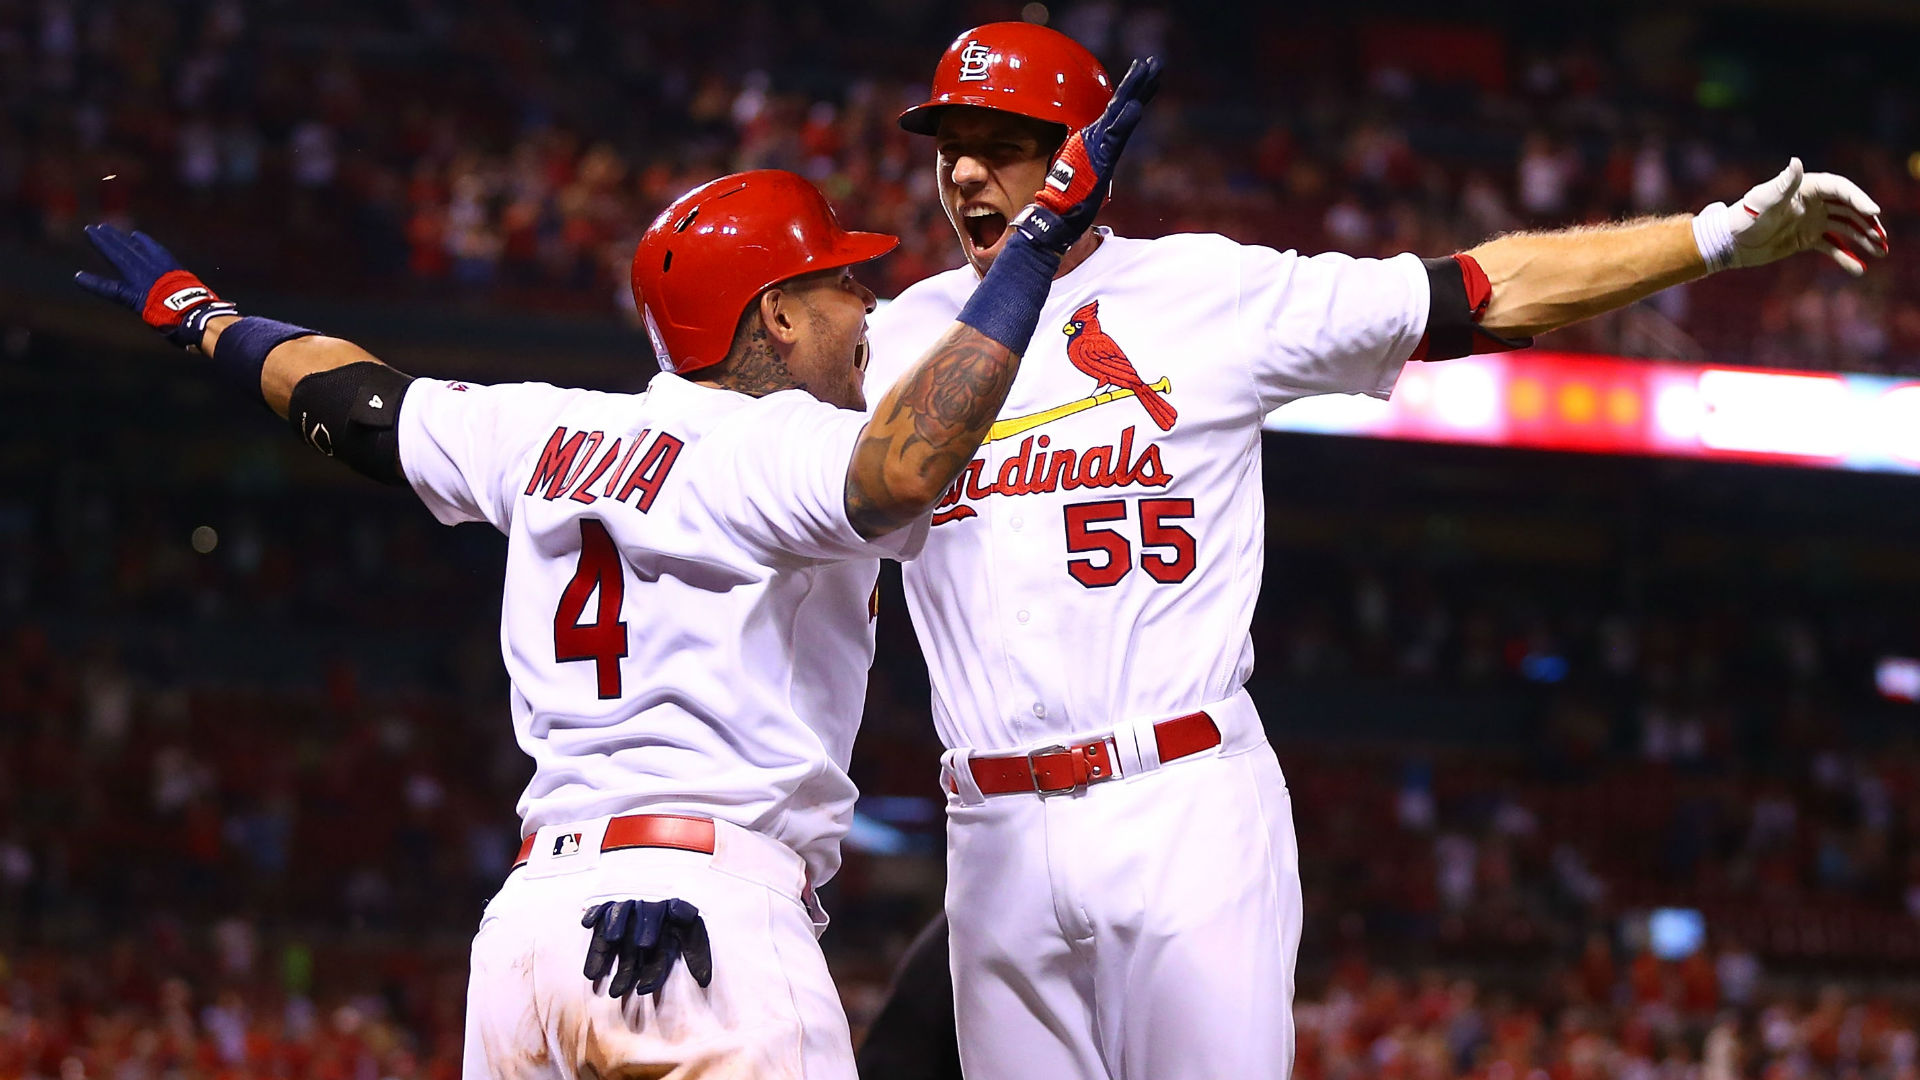 Vegas Play of the Day: Cubs at Cardinals